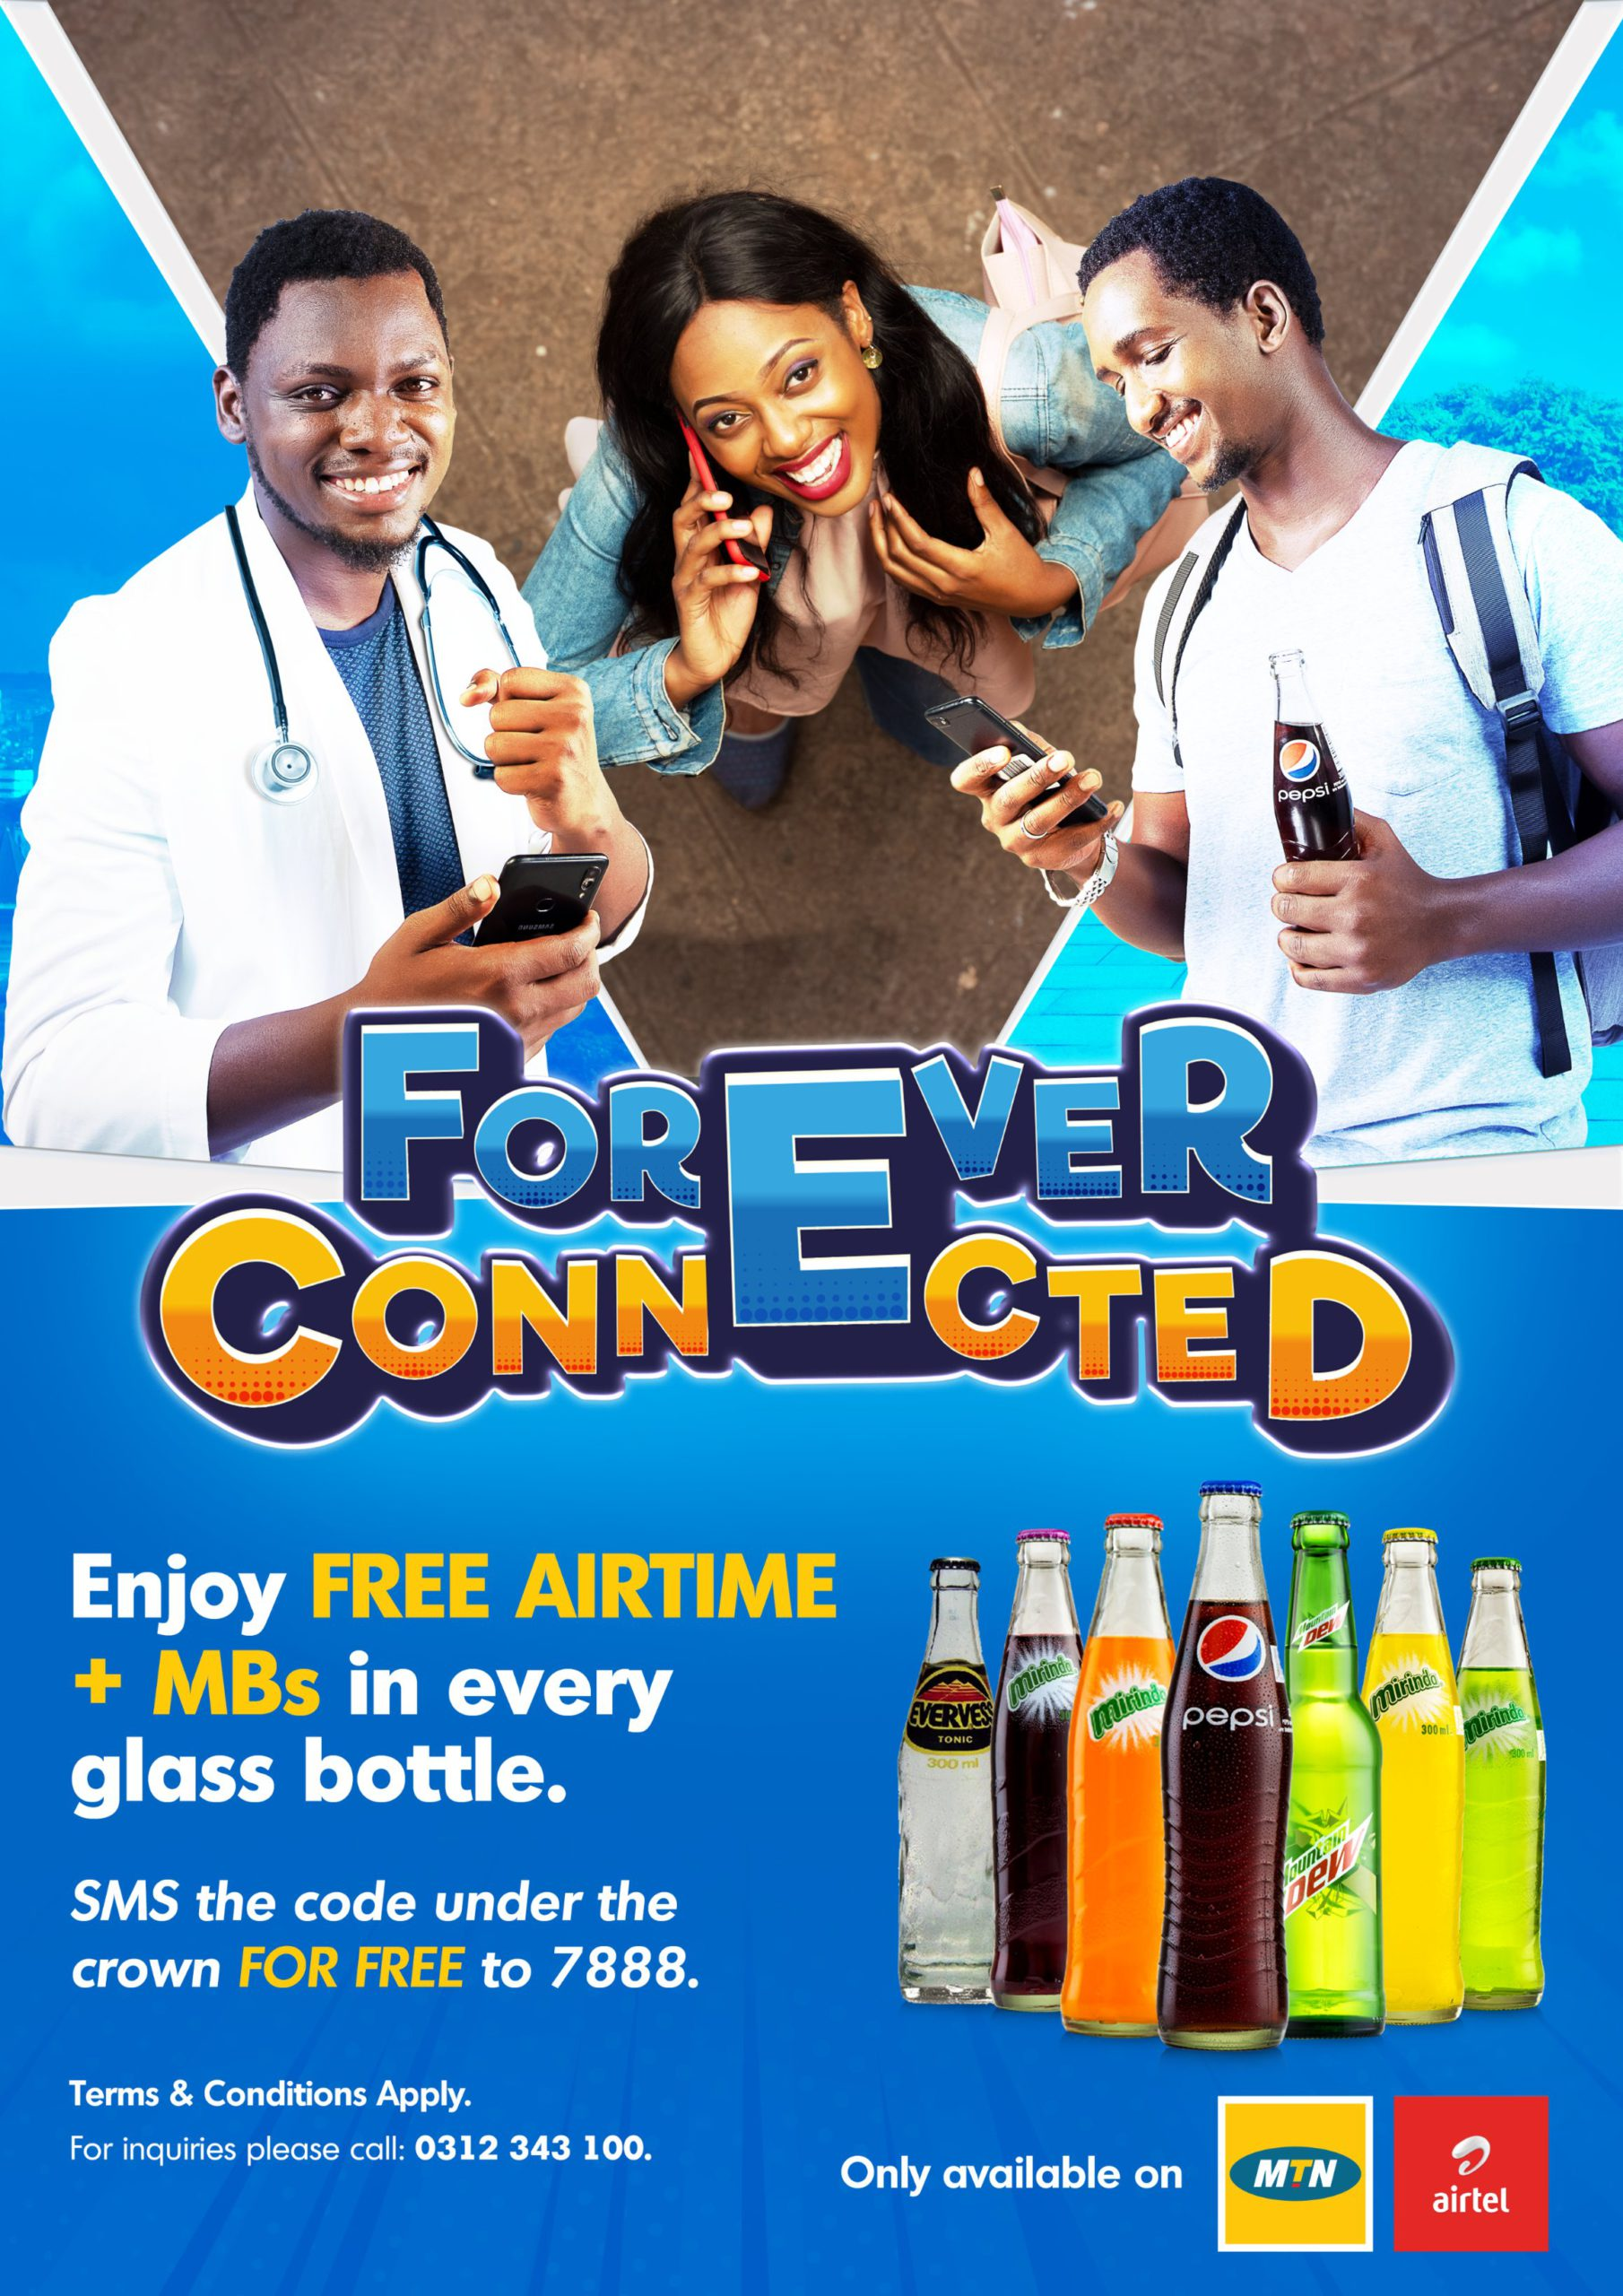 Crown Beverages Limited partners with MTN & Airtel in new 'Forever Connected' consumer campaign 1 MUGIBSON WRITES